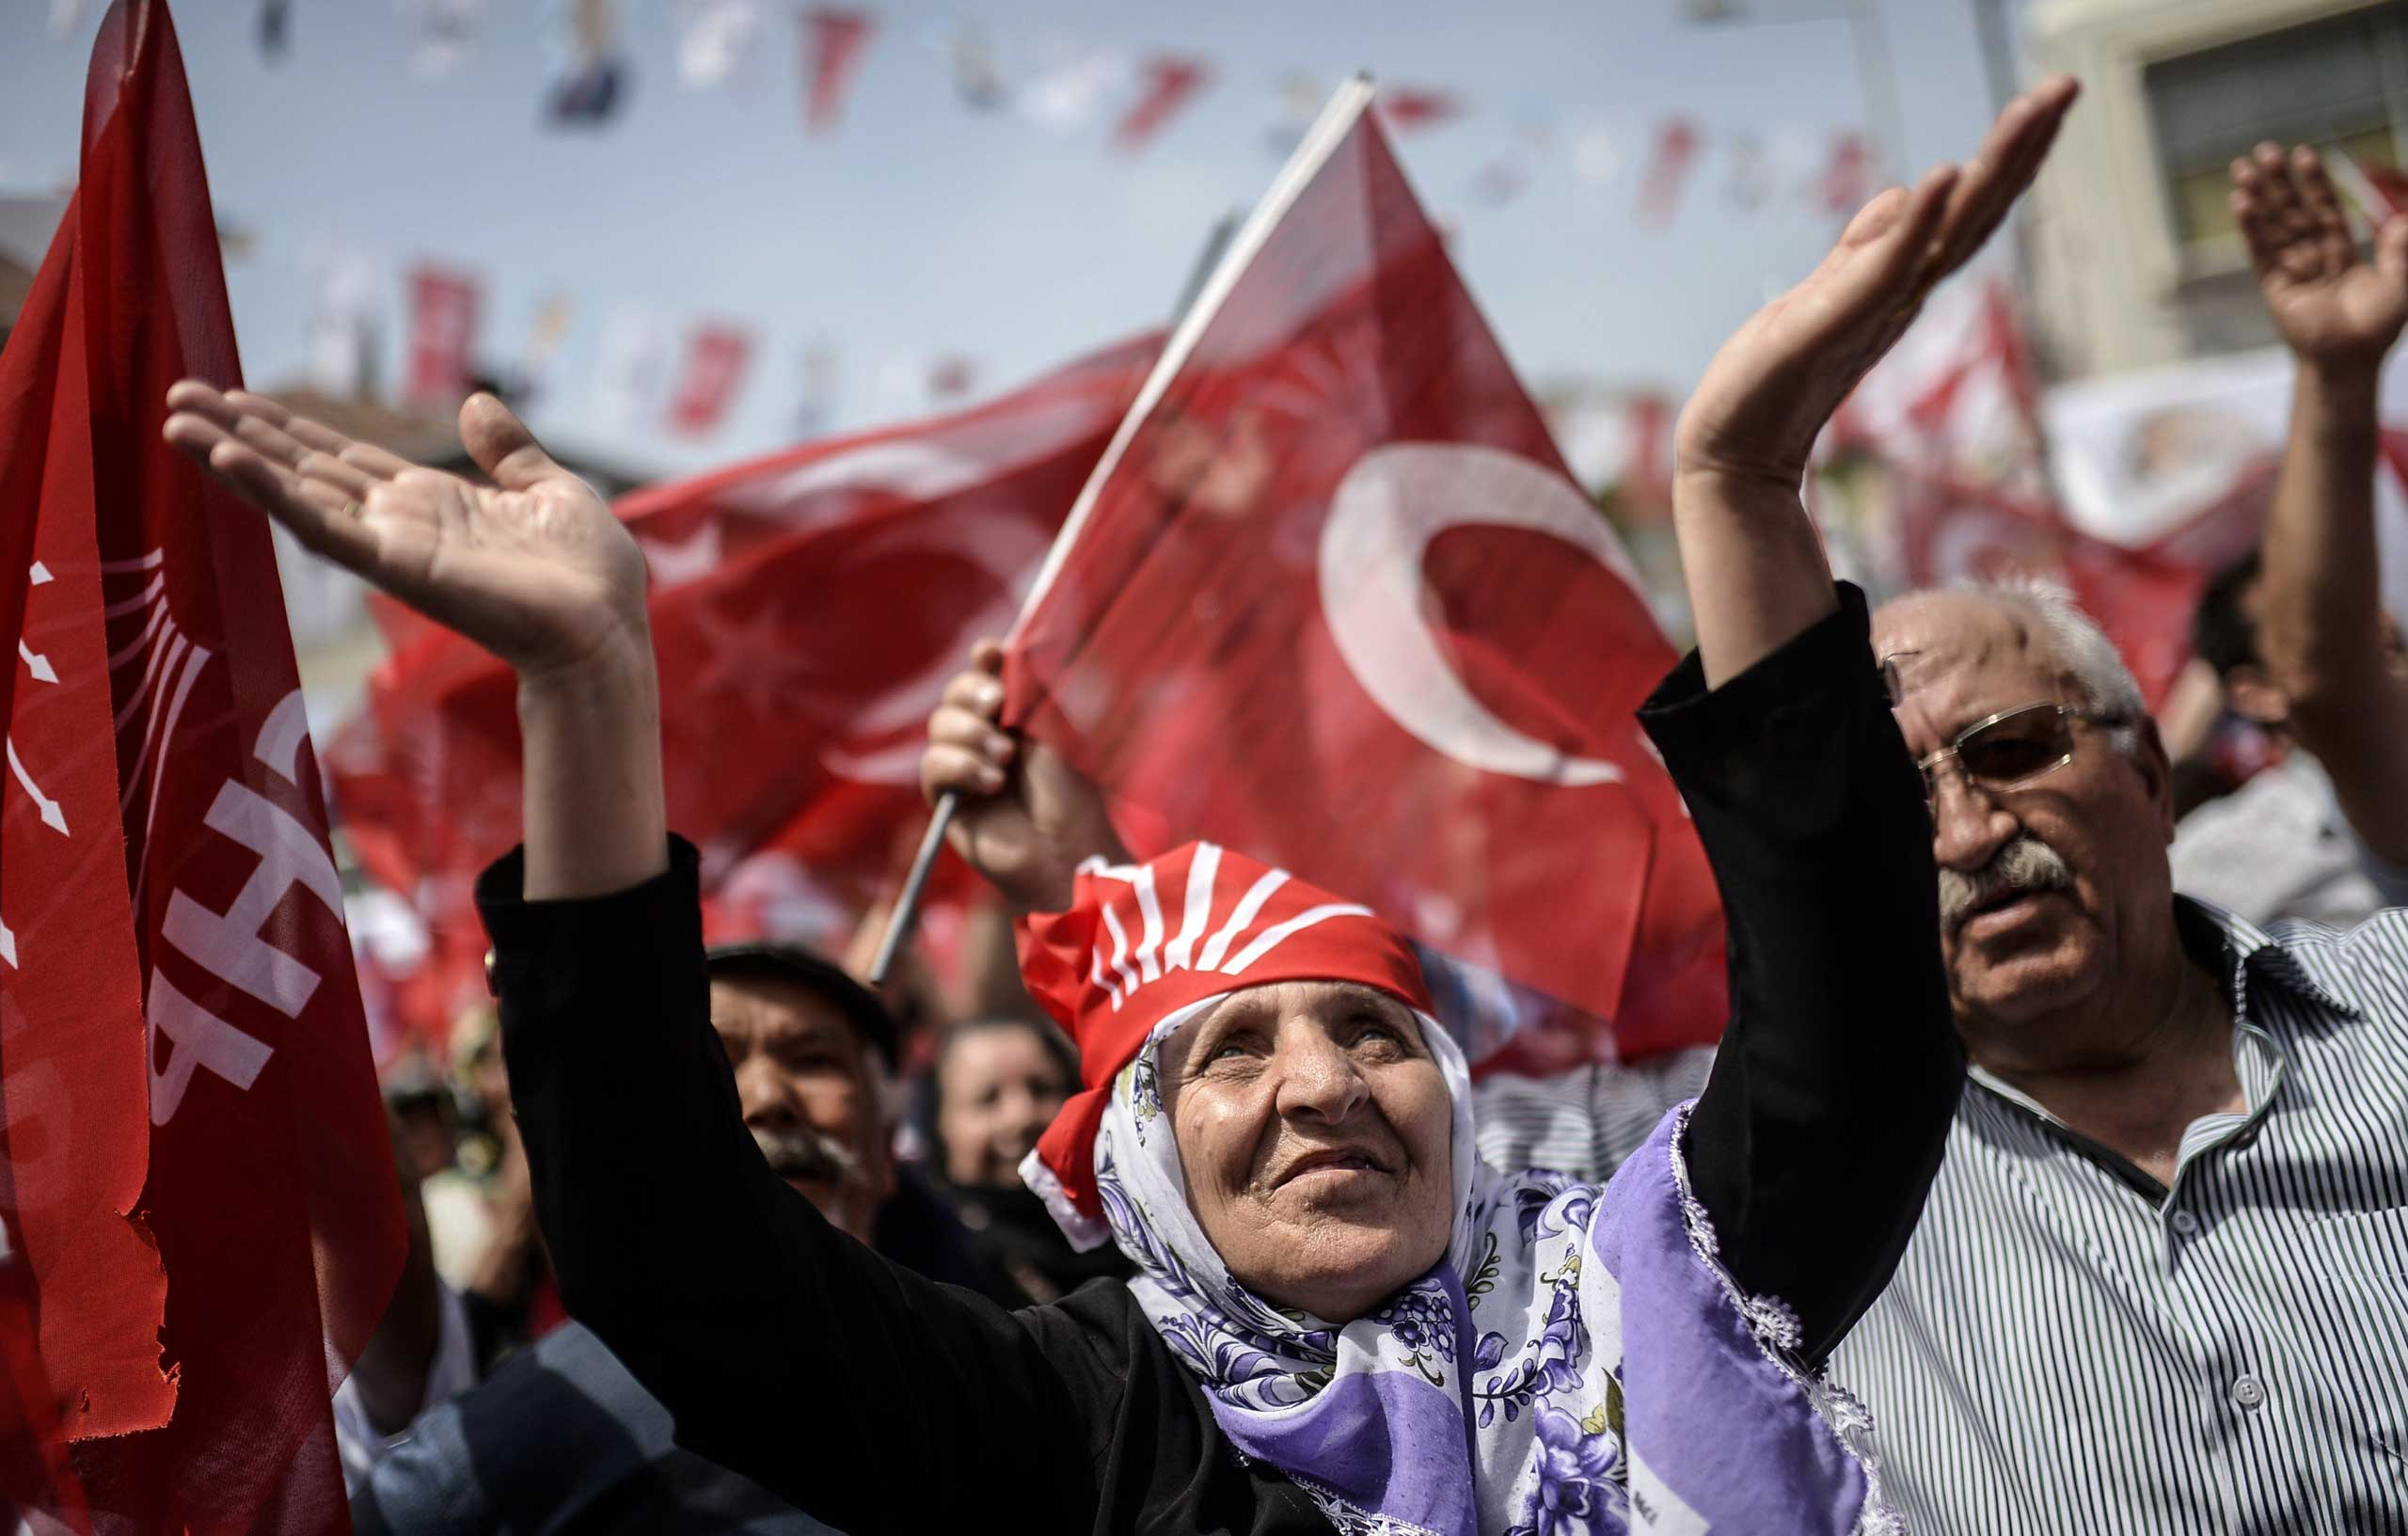 Supporters of Turkey's main opposition party, the Republican People's Party (CHP) cheer their leader during an election rally ahead of the legislative election in Istanbul on May 24, 2015.